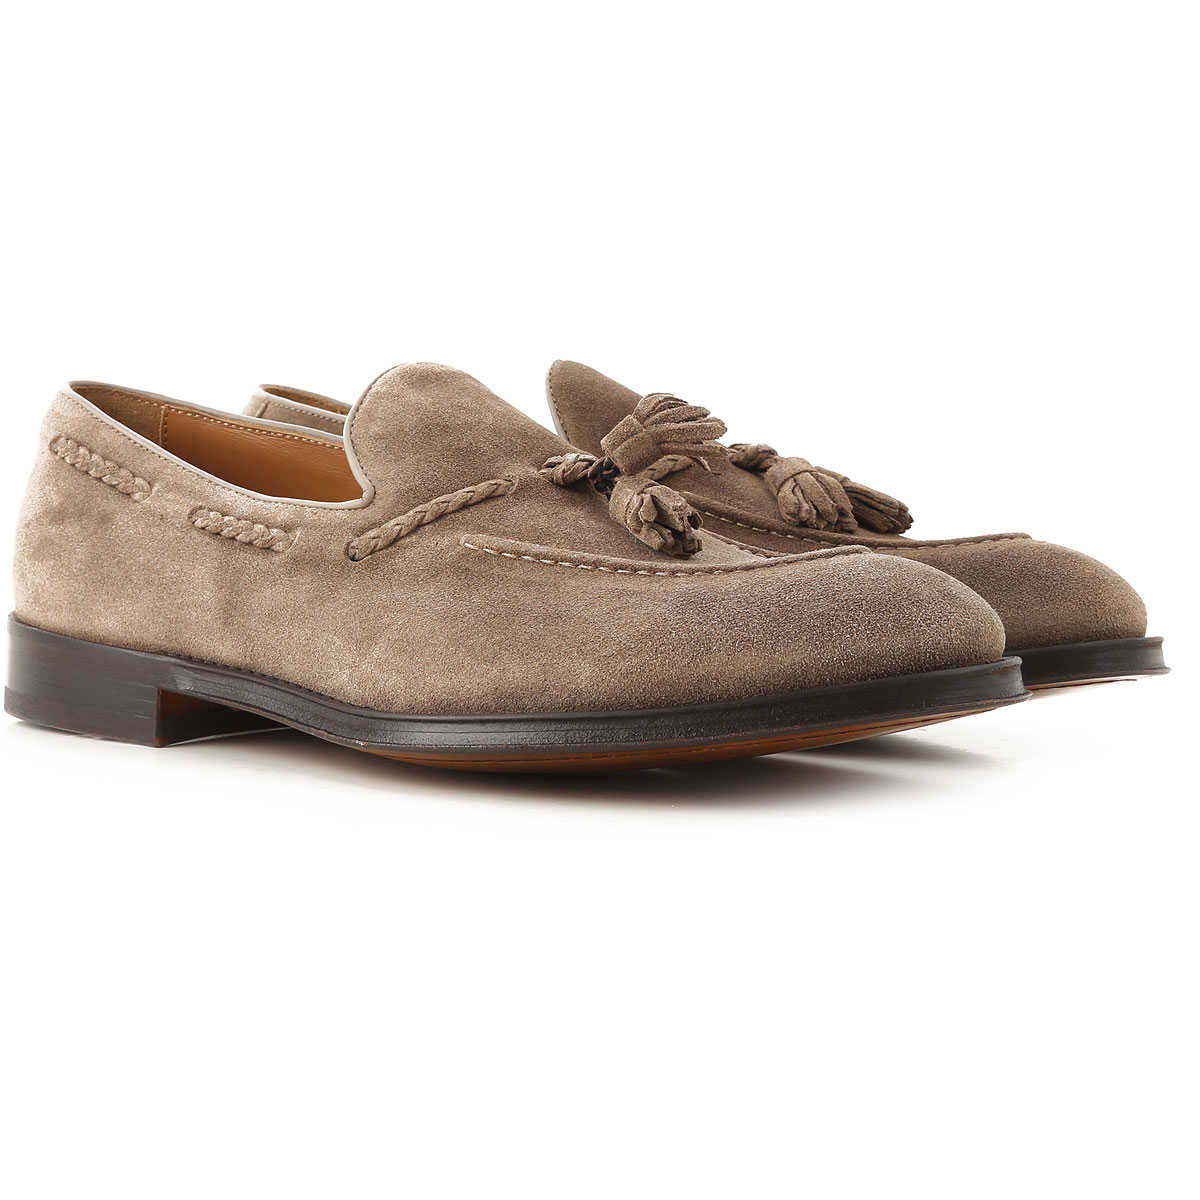 ac067eb2dc5 Doucals Loafers for Men